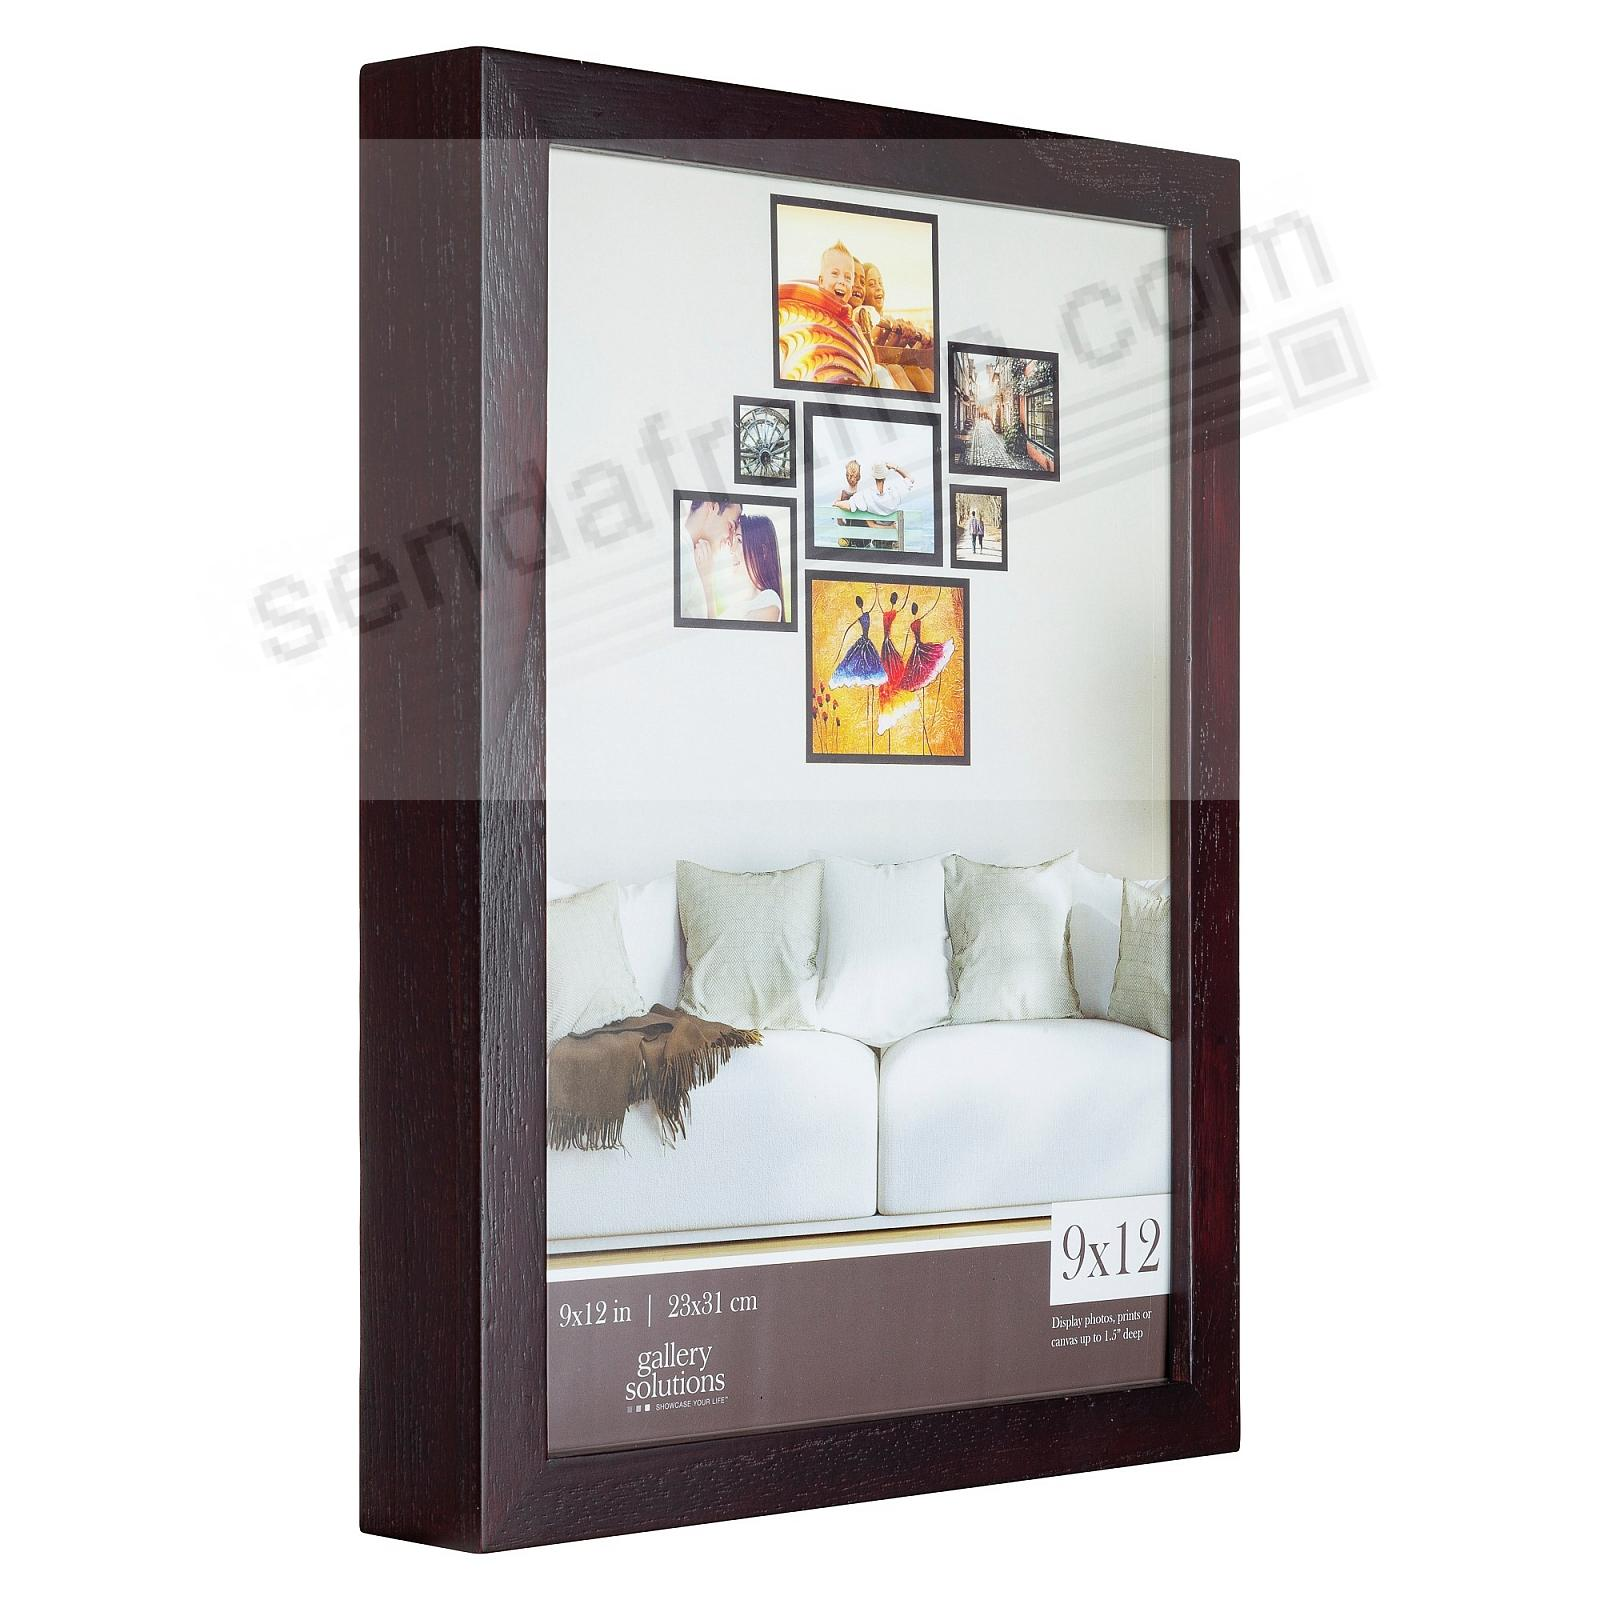 Walnut GALLERY 9x12 frame by Gallery Solutions®